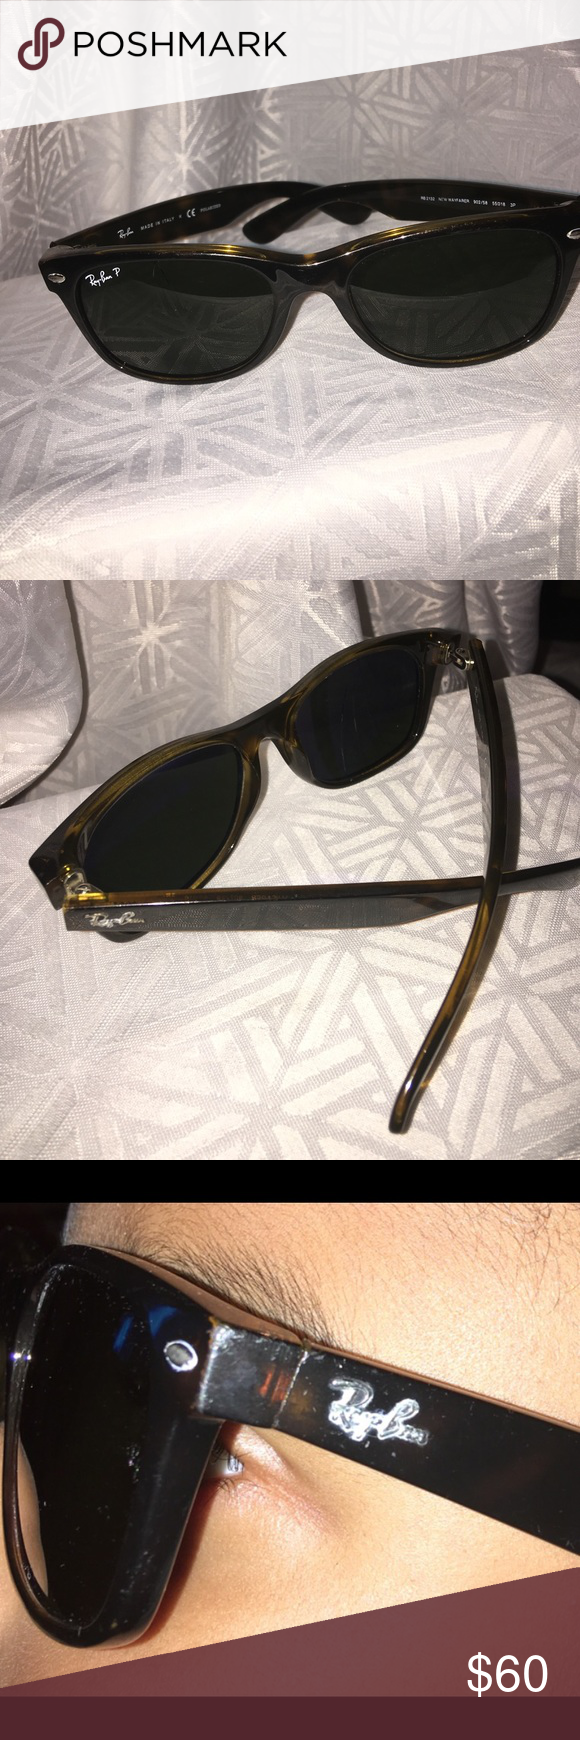 8d337ddecf3a3 💯Authentic Ray Ban Sunglasses 😎 Authentic Ray Ban Sunglasses RB 2132 18  These are New WayFarer Made in Italy. FLAWS--- these Sunglasses have a Ray  Ban ...